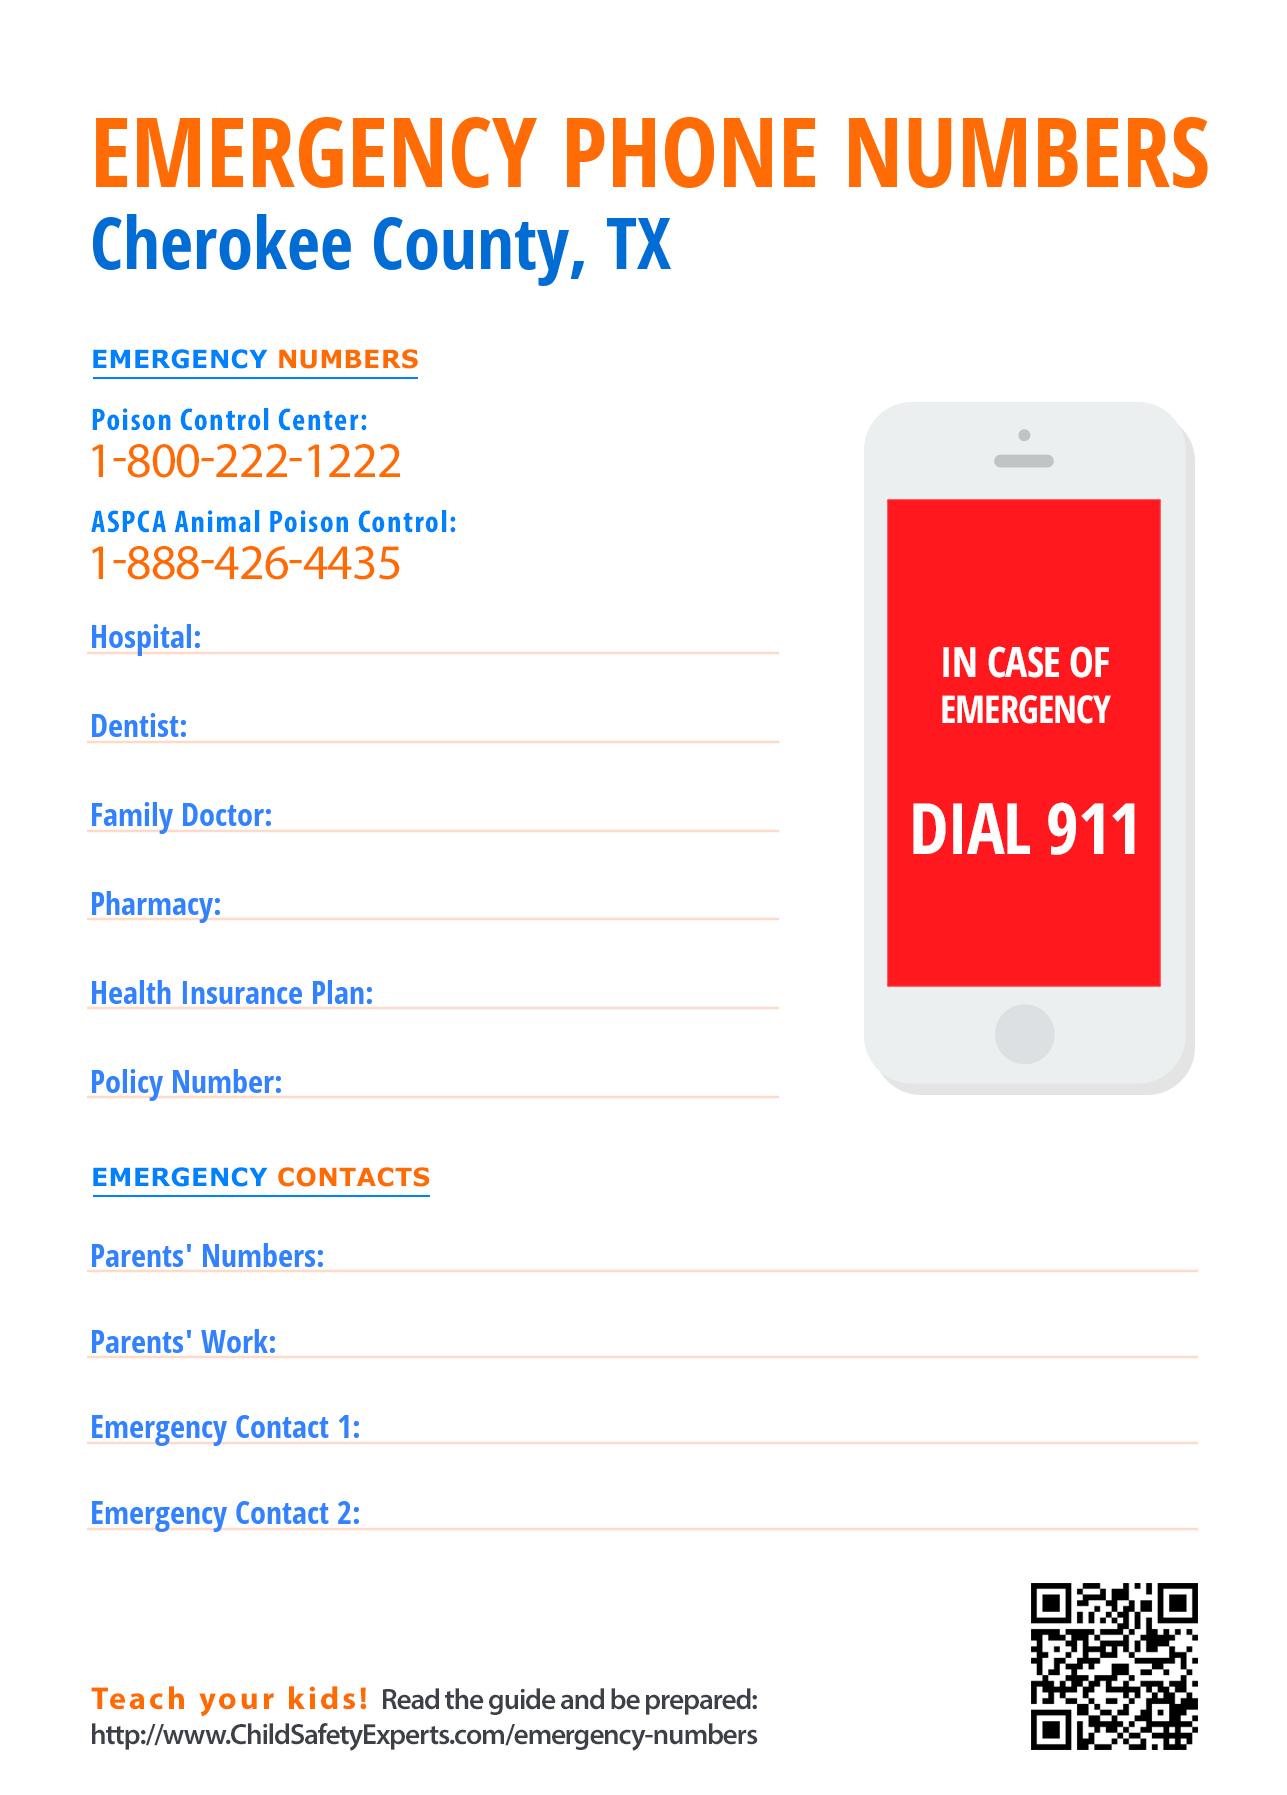 Important emergency phone numbers in Cherokee County, Texas